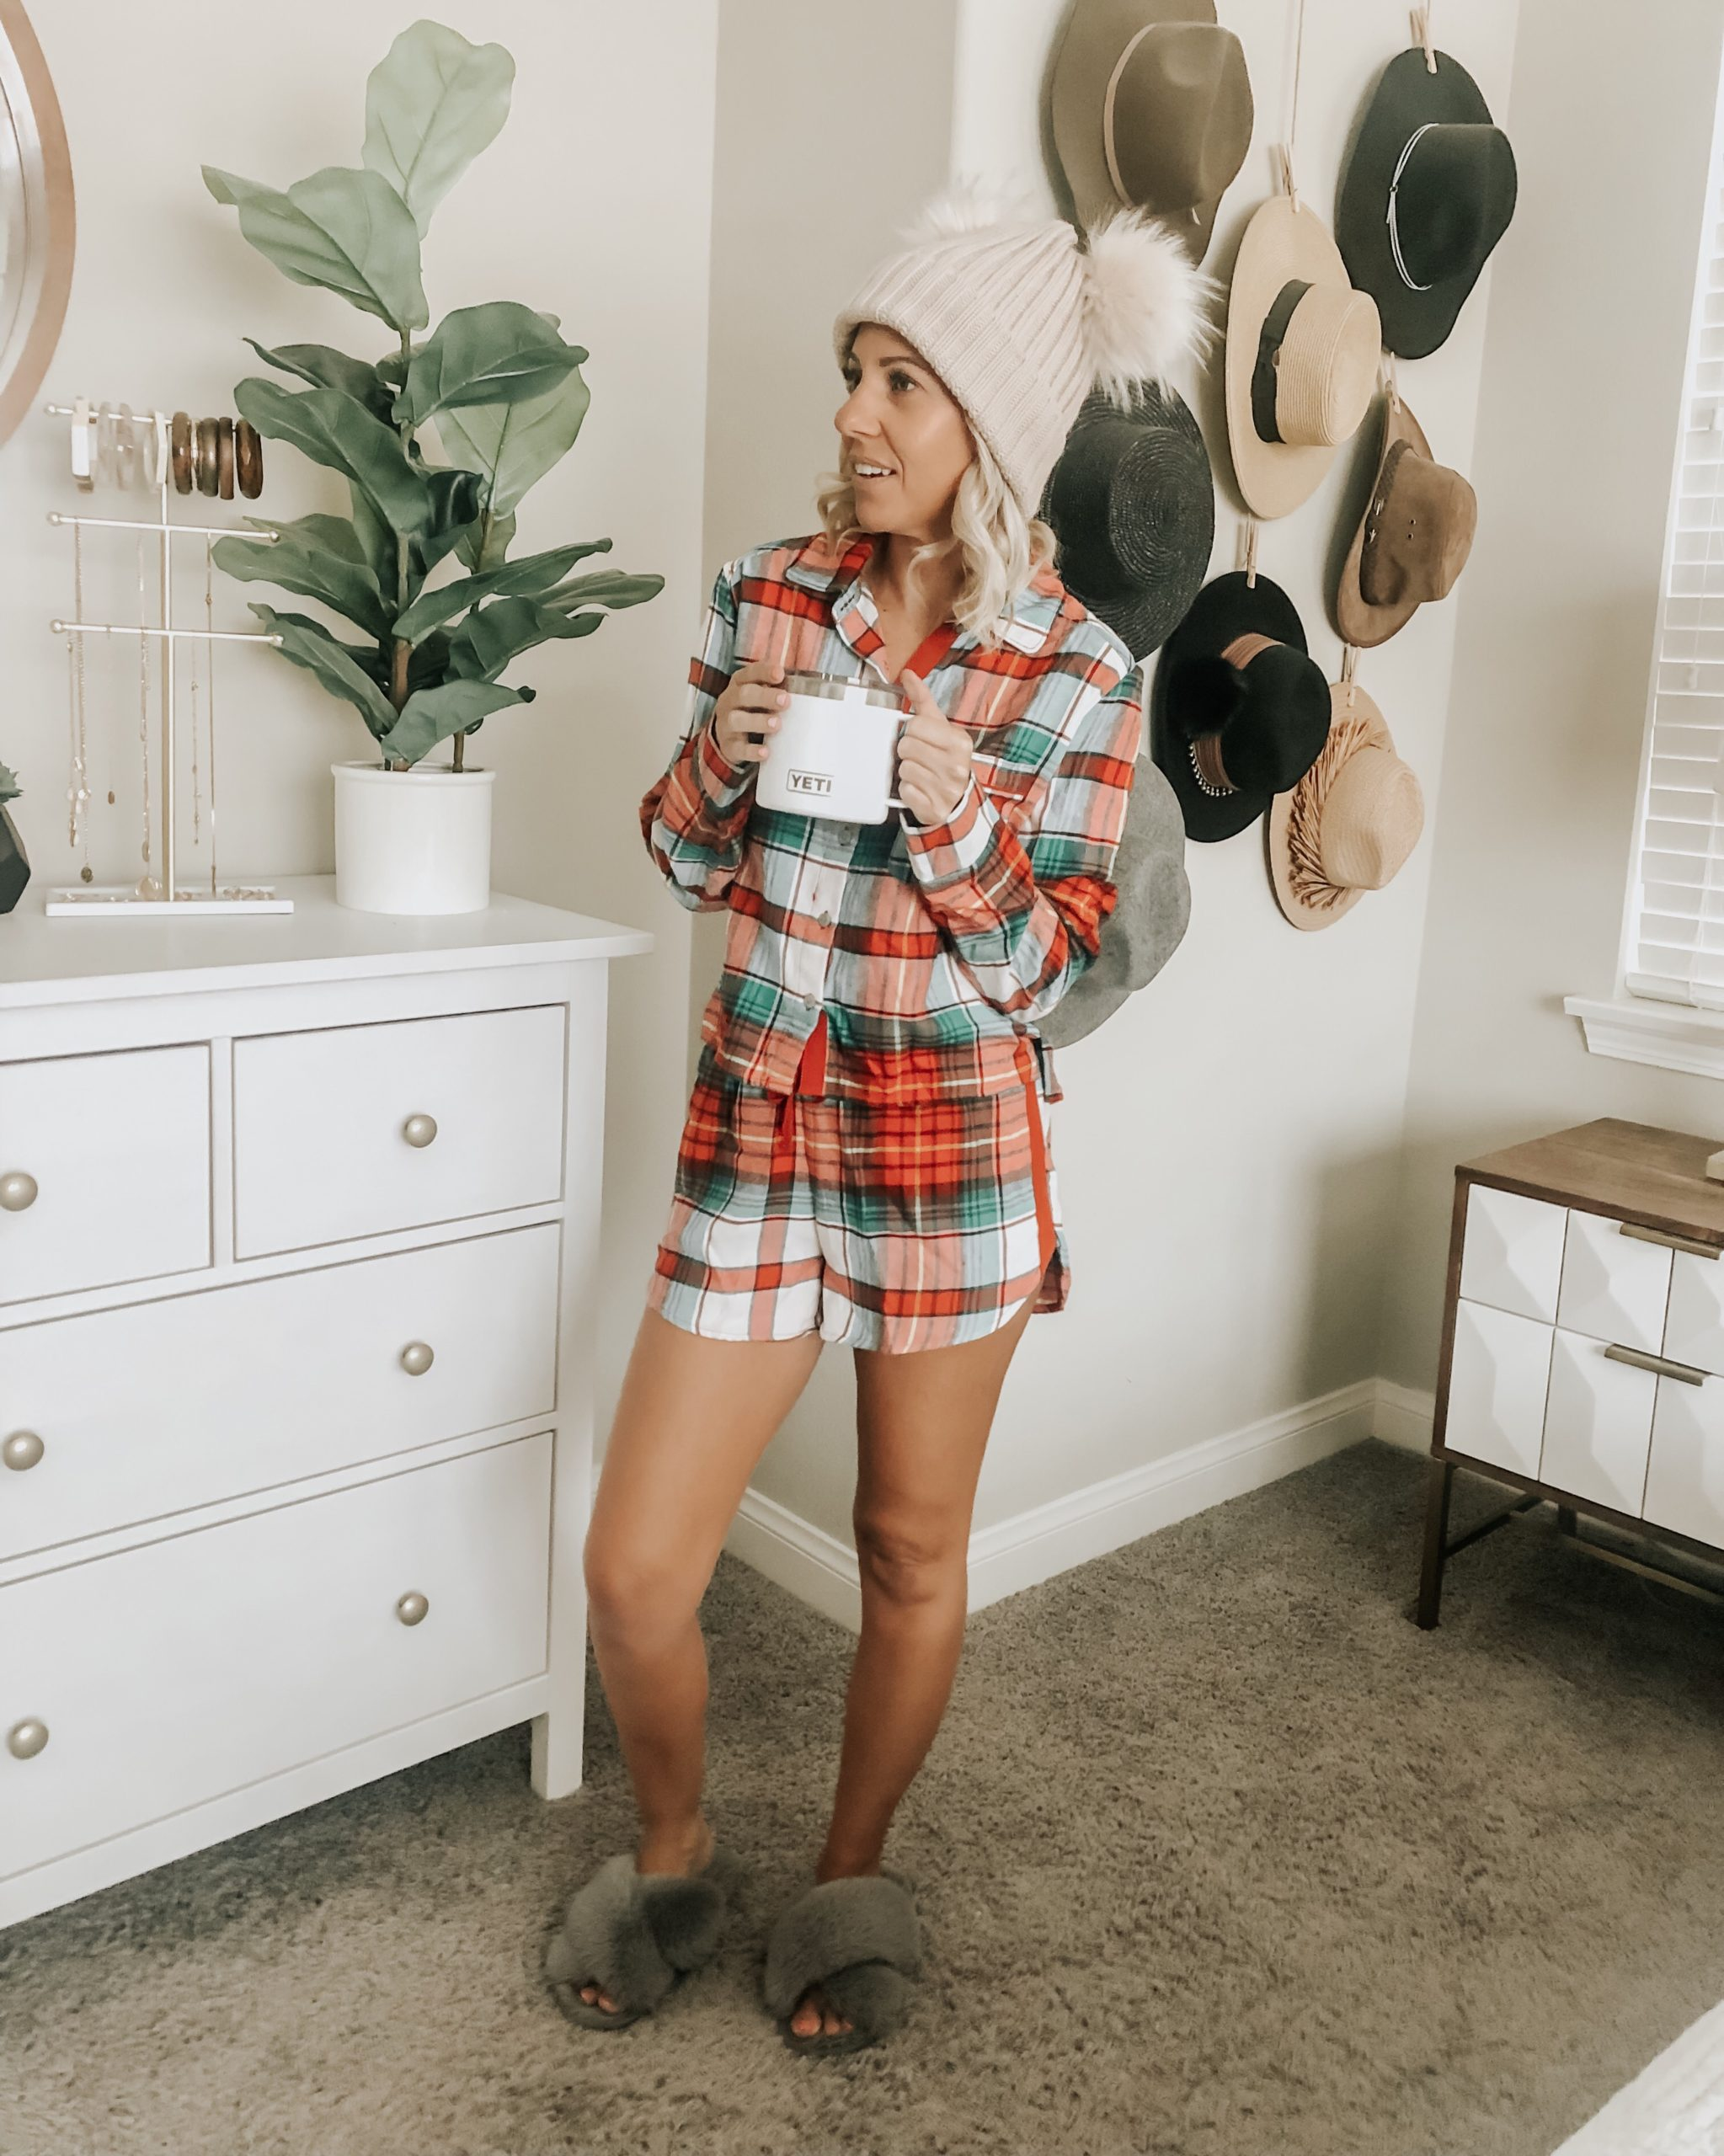 THE BEST OF BLACK FRIDAY SALES- Jaclyn De Leon Style+ I'm giving the full run down of all the best Sales this weekend and my top must have picks. And of course this holiday plaid pj's are on SALE